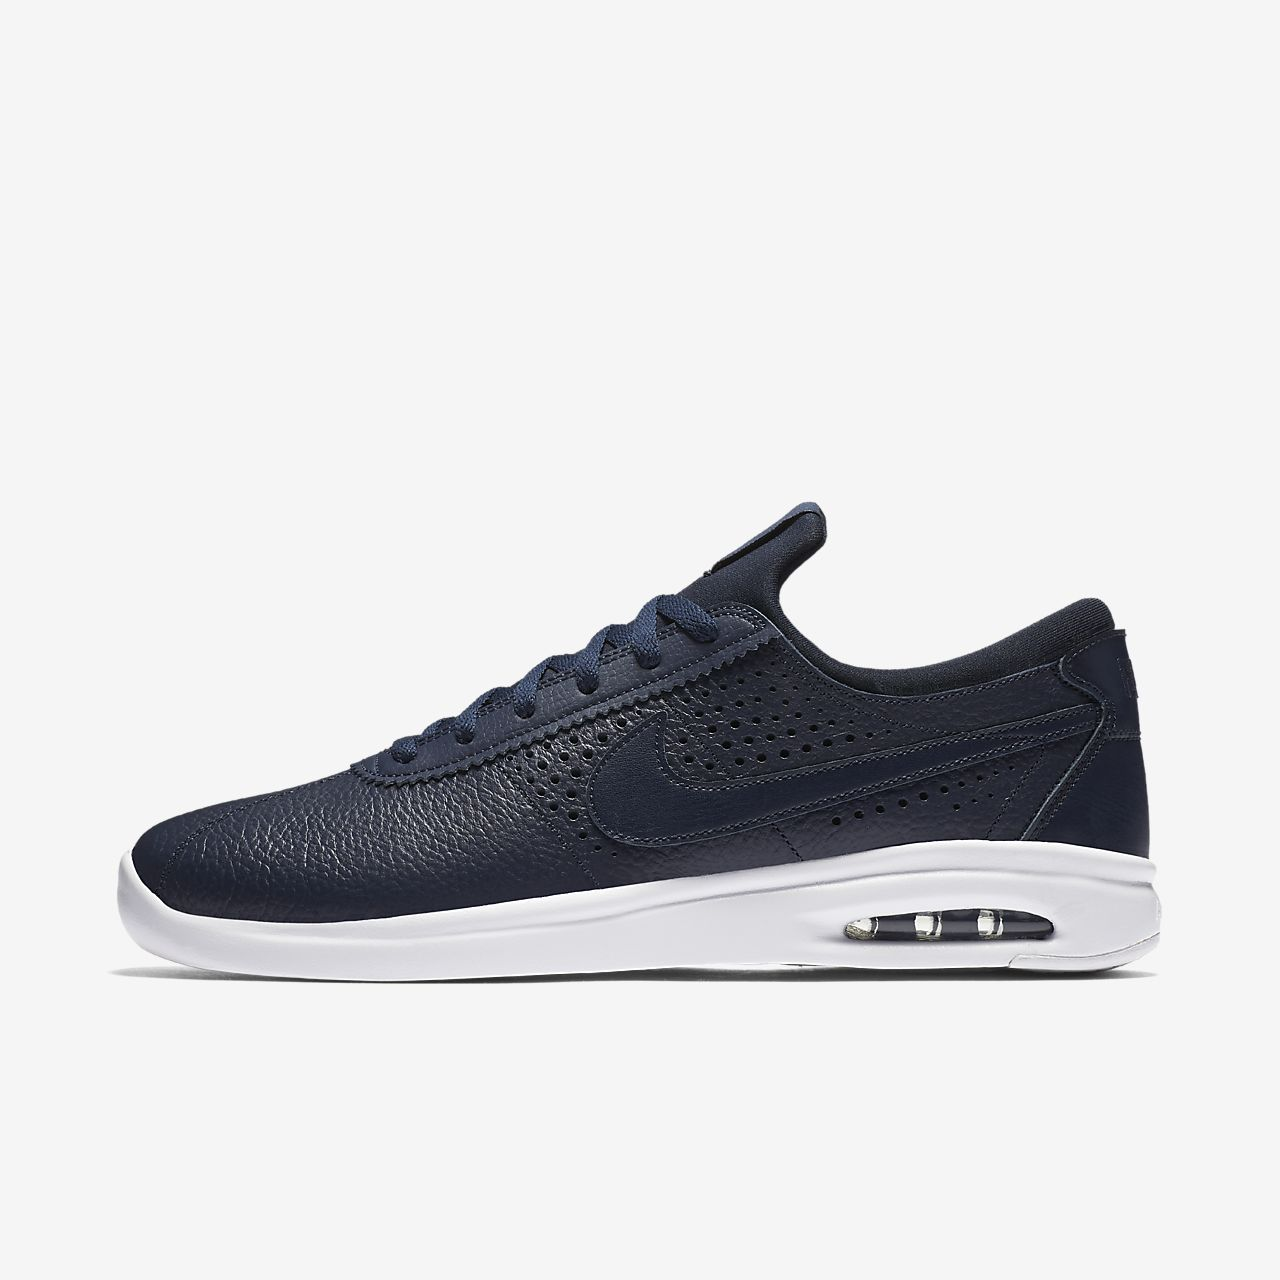 nike air max bruin suede shoes